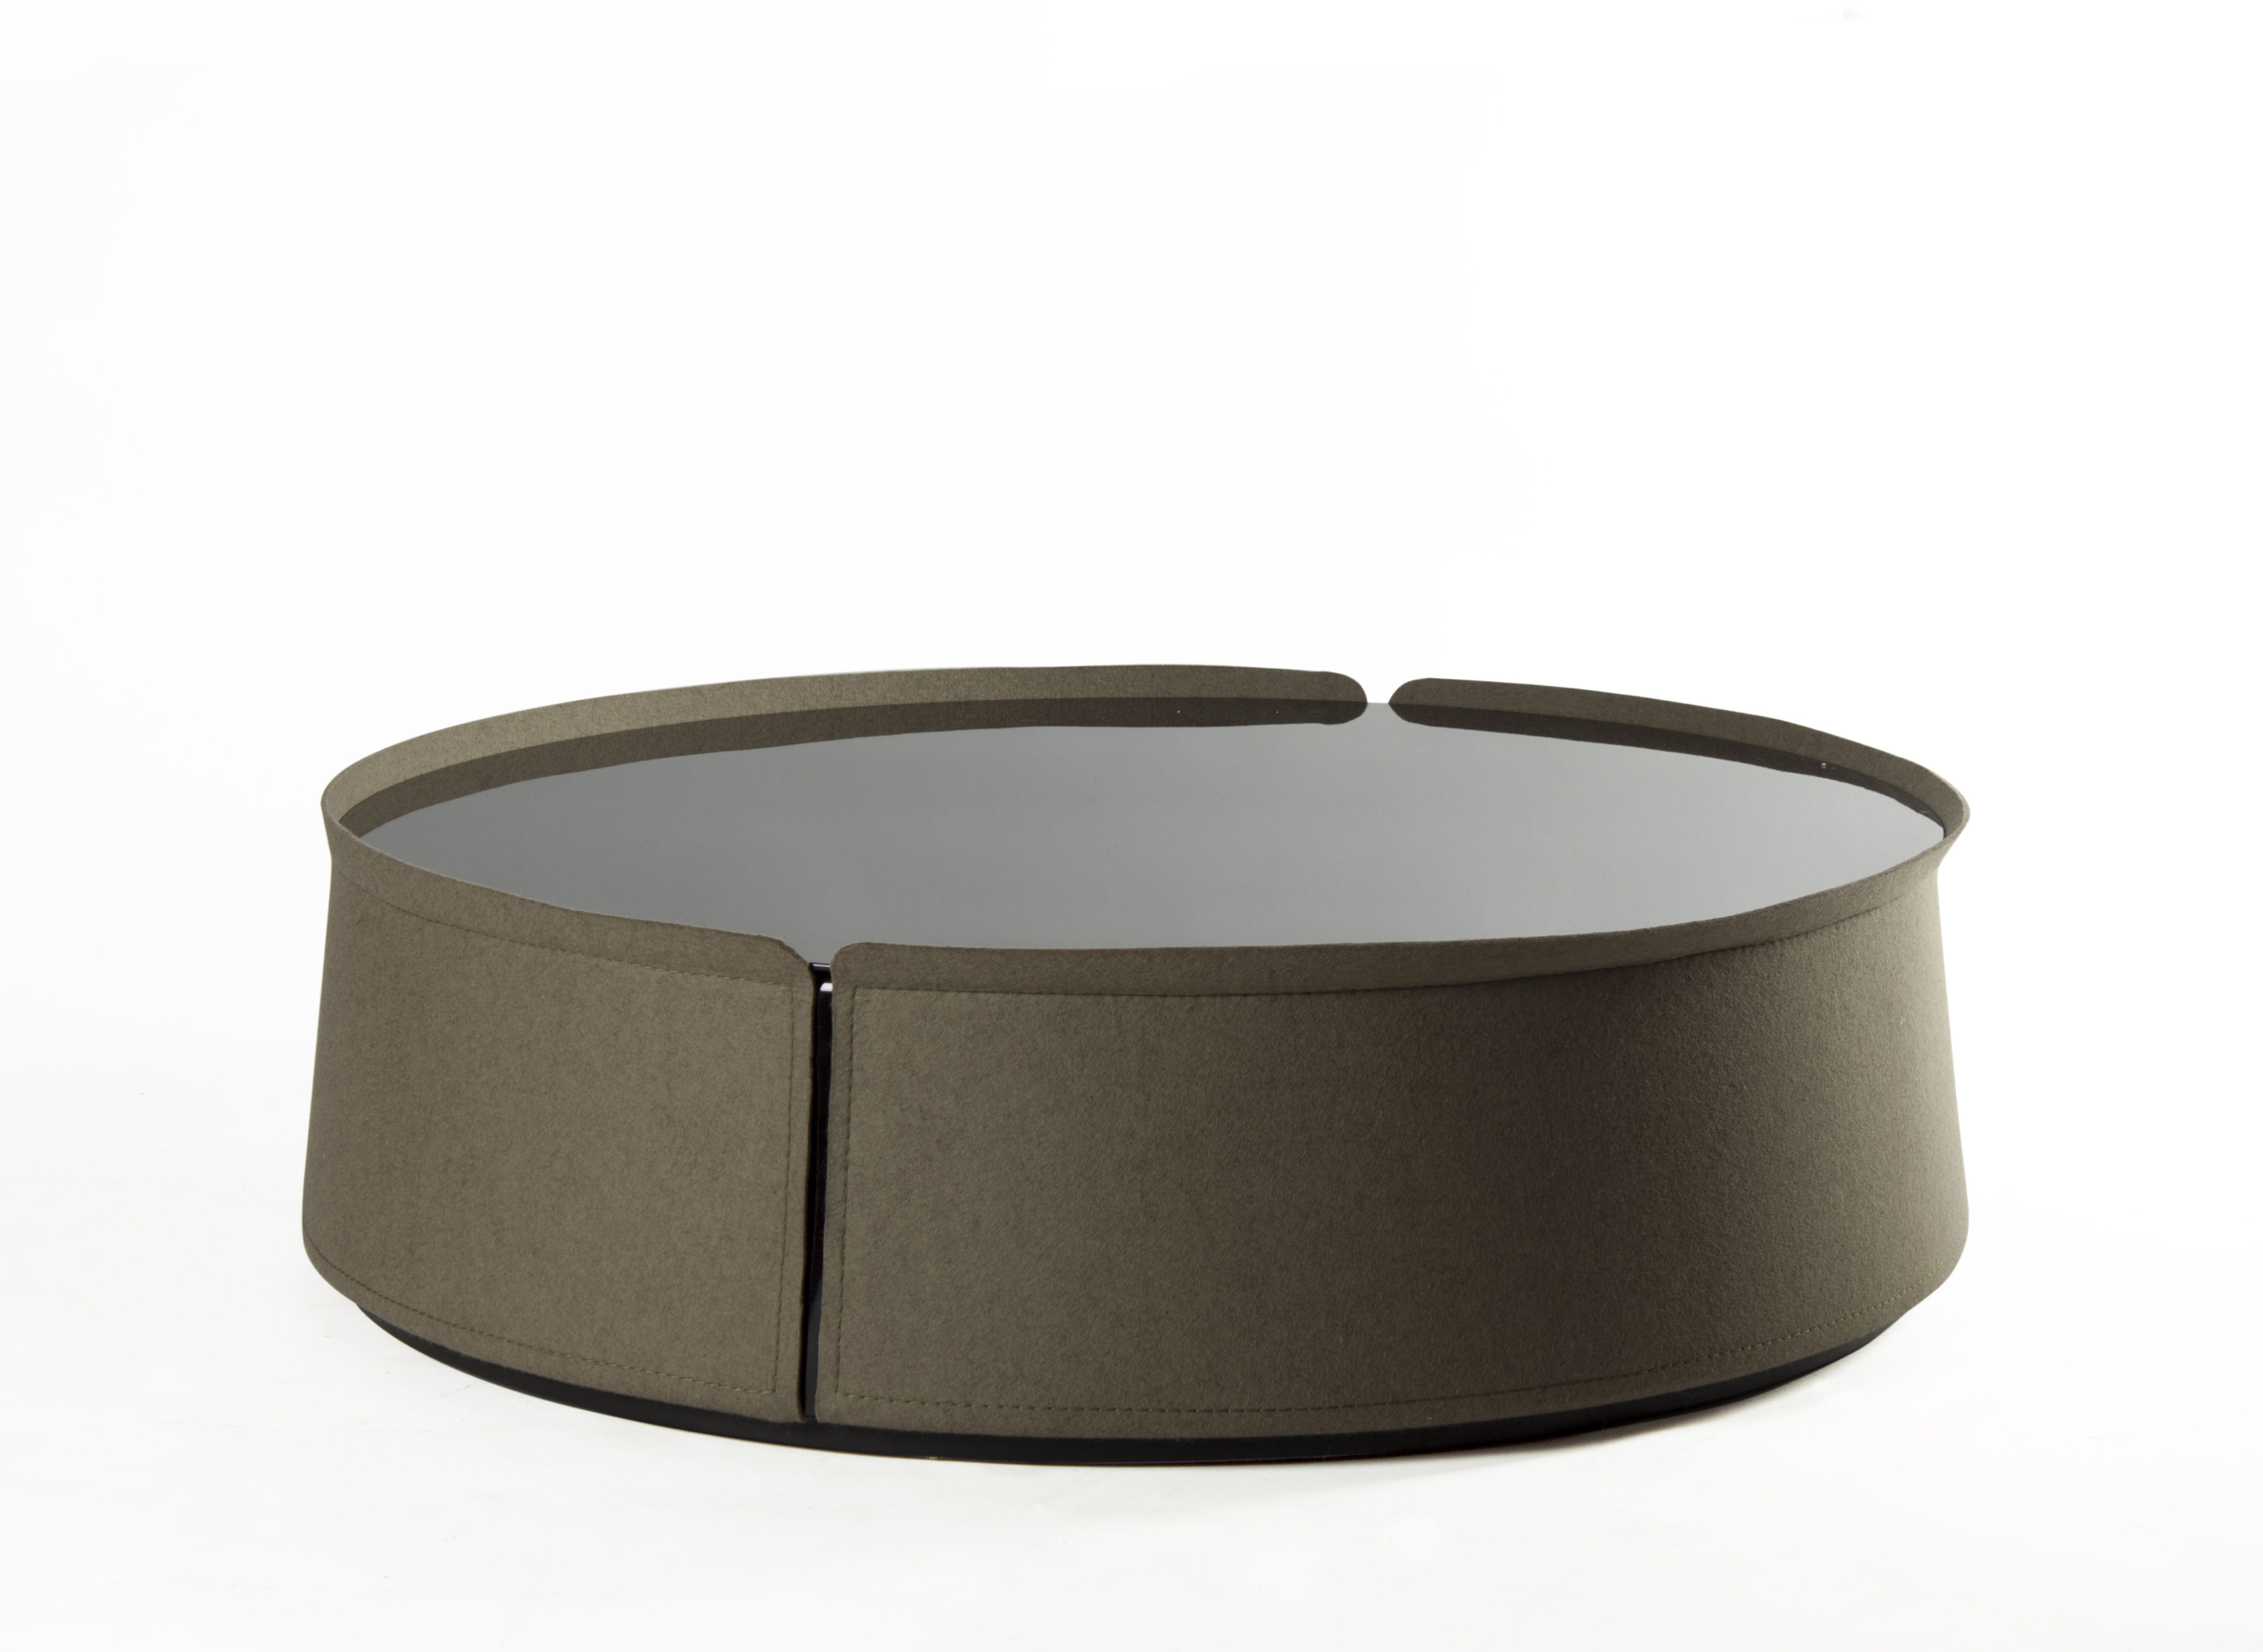 CORUM Coffee table for living room Les Contemporains Collection by